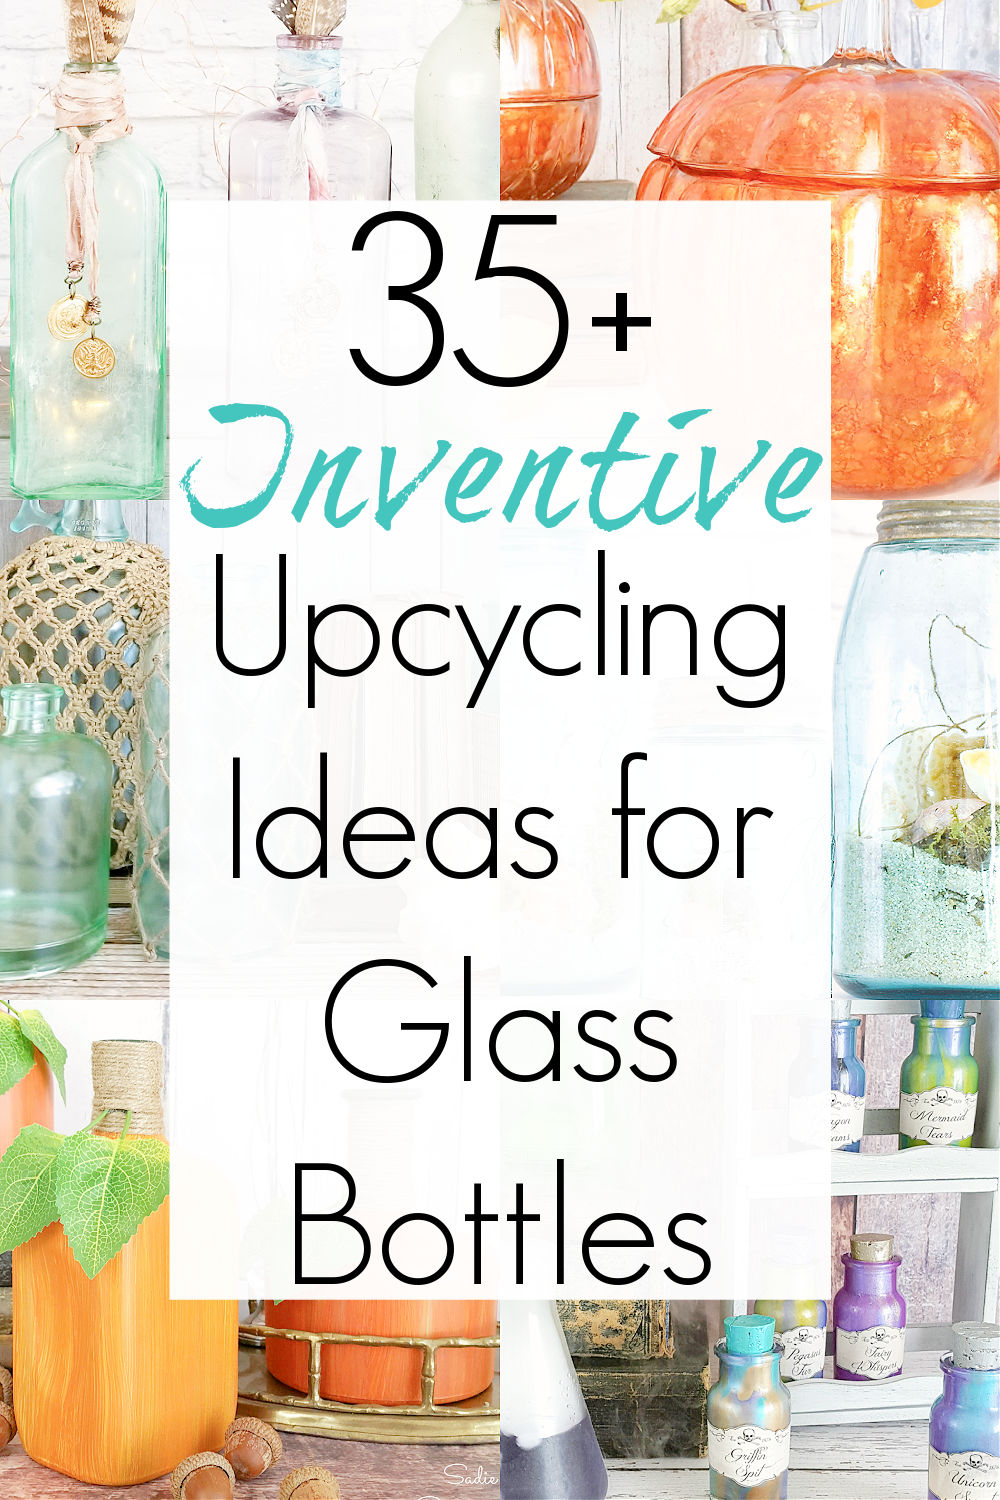 glass bottle ideas and upcycle glass bottles